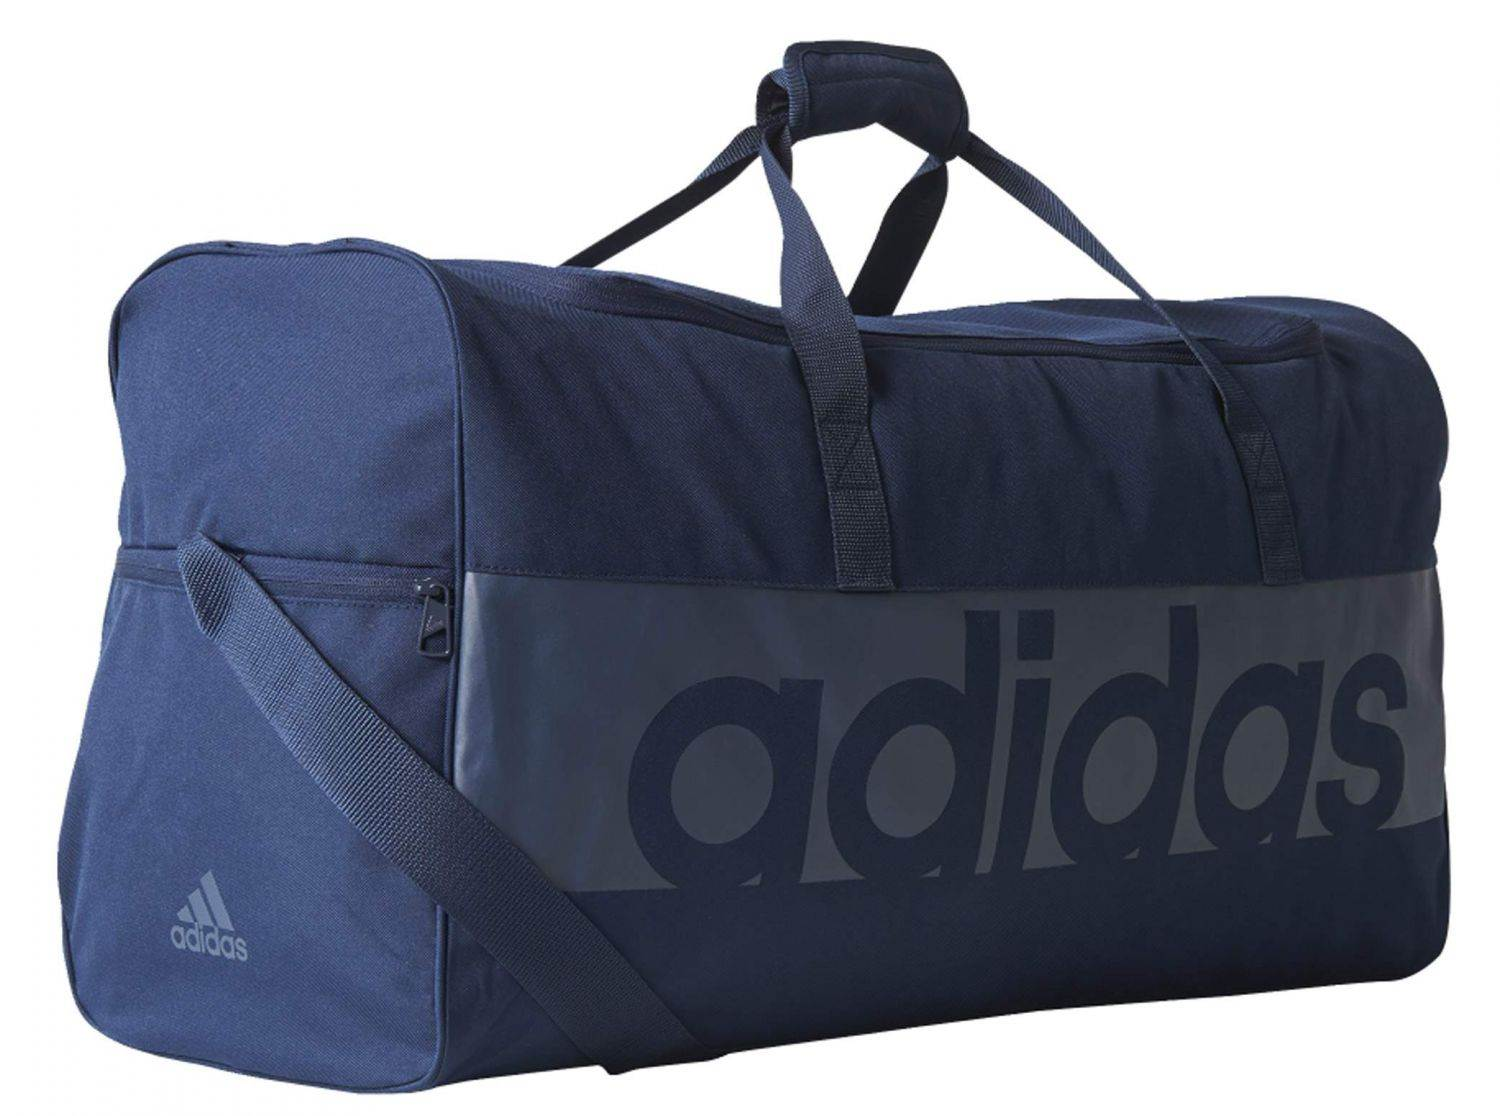 best service 79d14 baf5a ... Bags  new concept 77b58 f53a2 adidas Sporttasche Linear Performance TB  L (Farbe collegiate navycollegiate navytrace ...